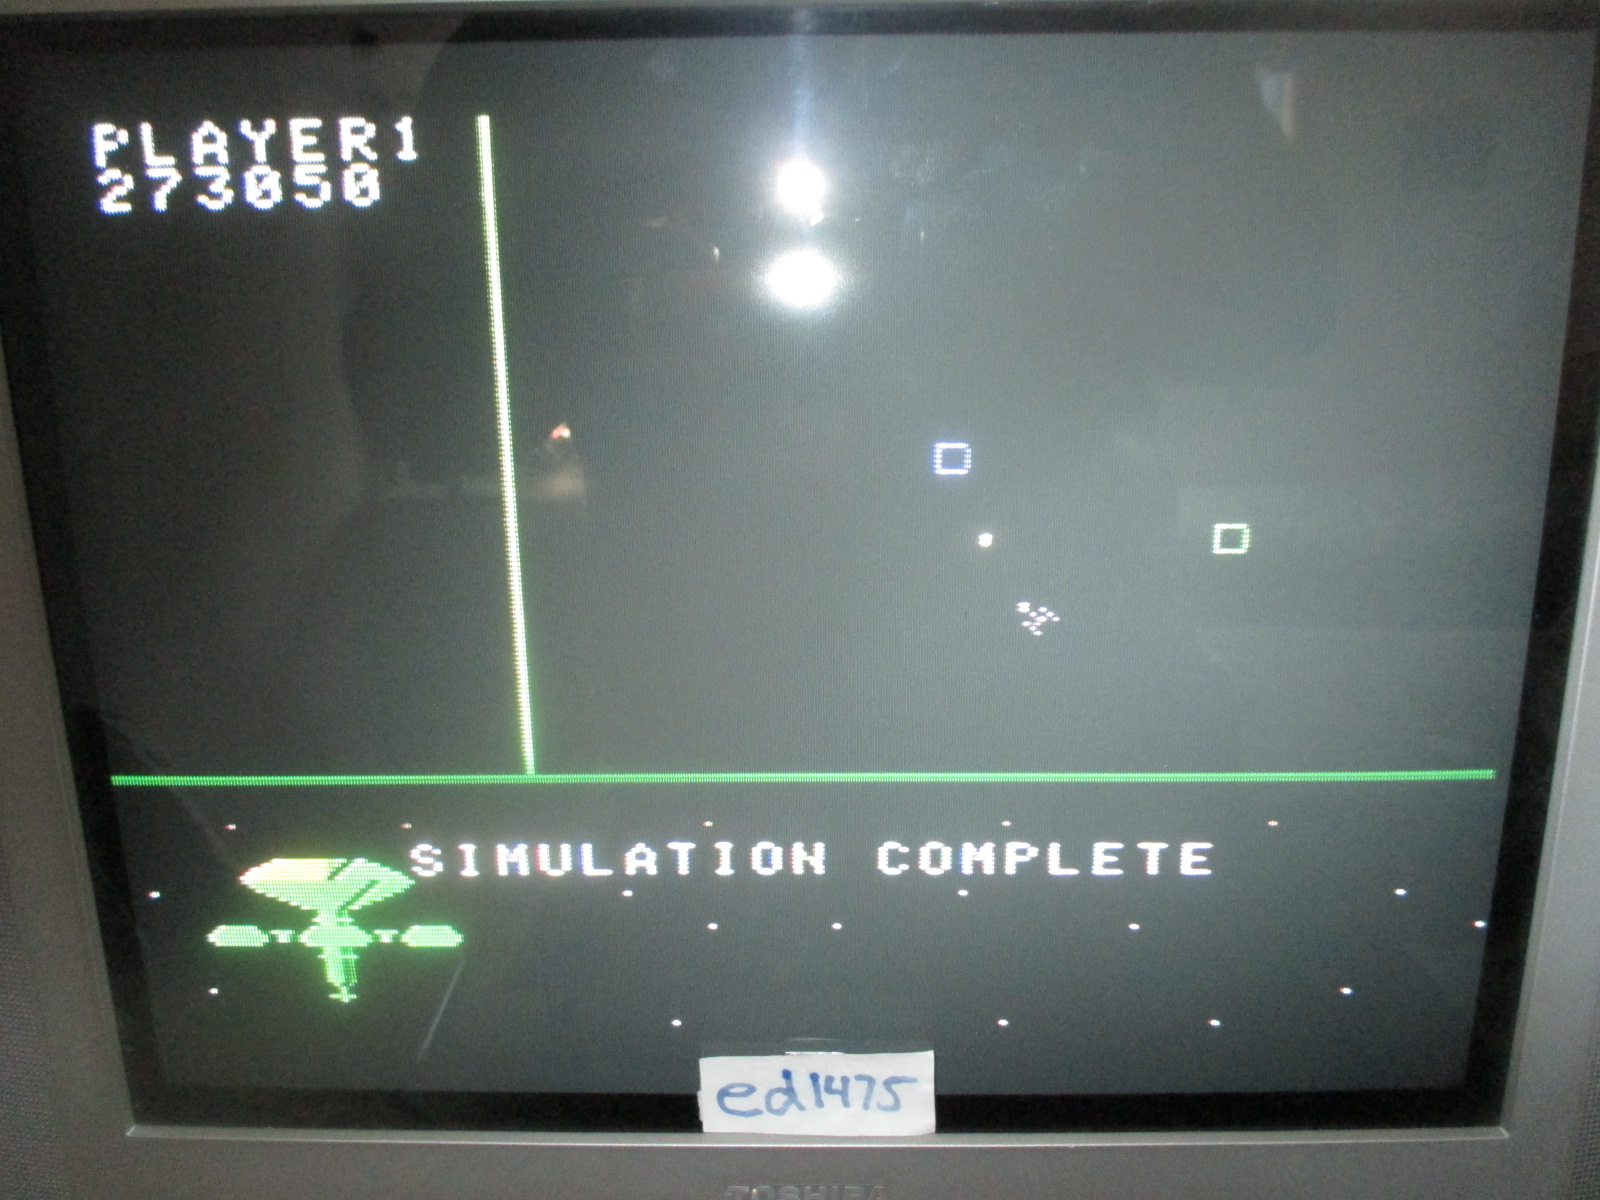 ed1475: Star Trek: Strategic Operations Simulator: Skill 1 (Colecovision) 273,050 points on 2014-07-09 20:34:31